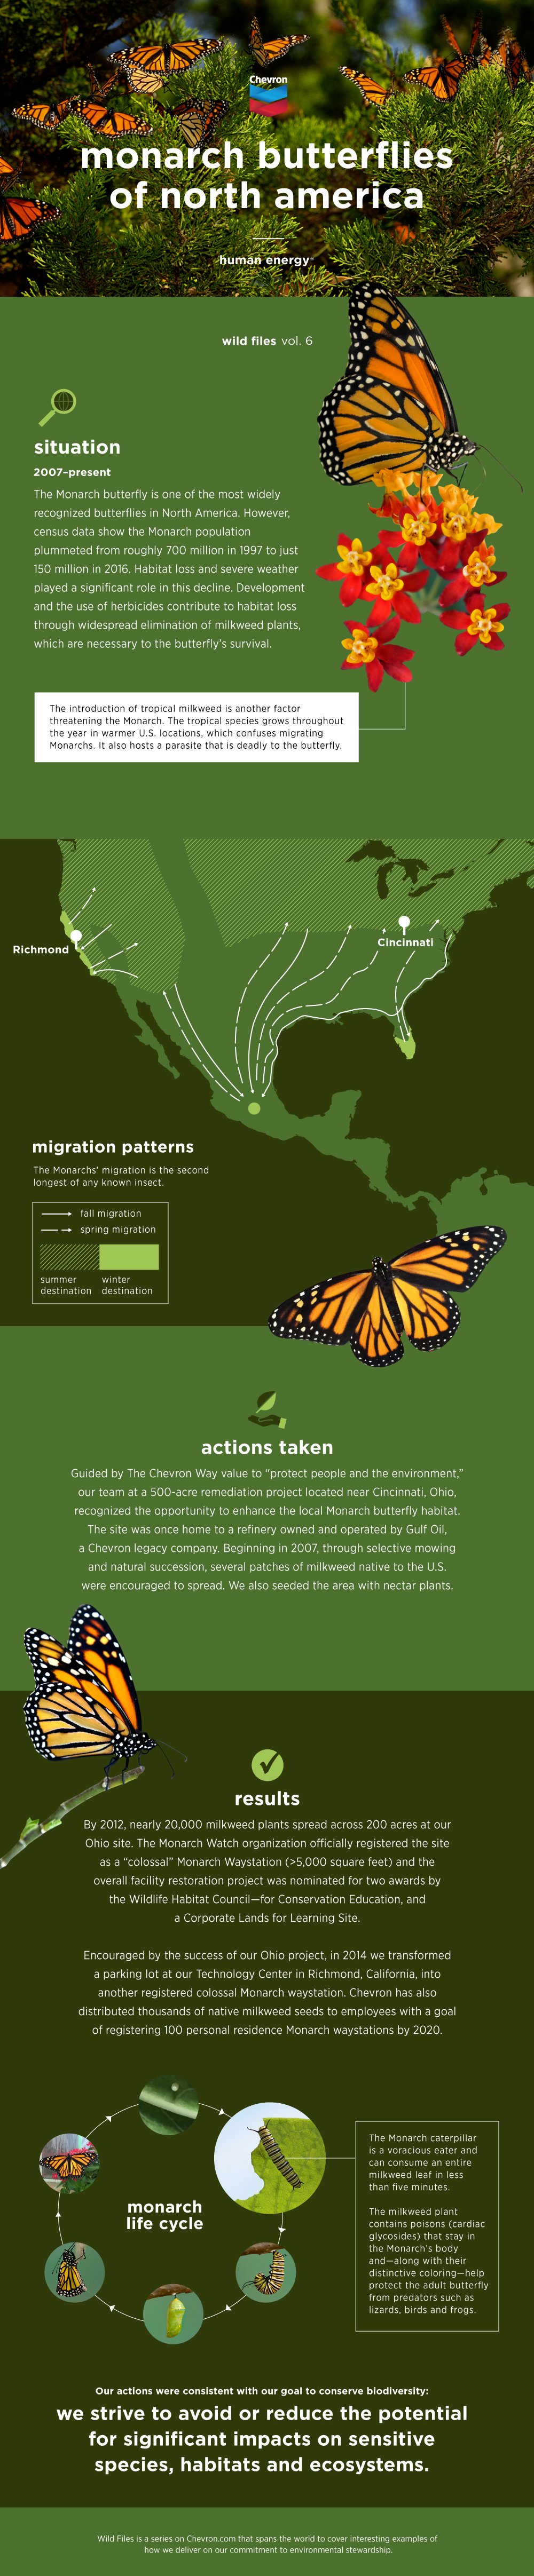 Wild Files: Monarch Butterflies of North America